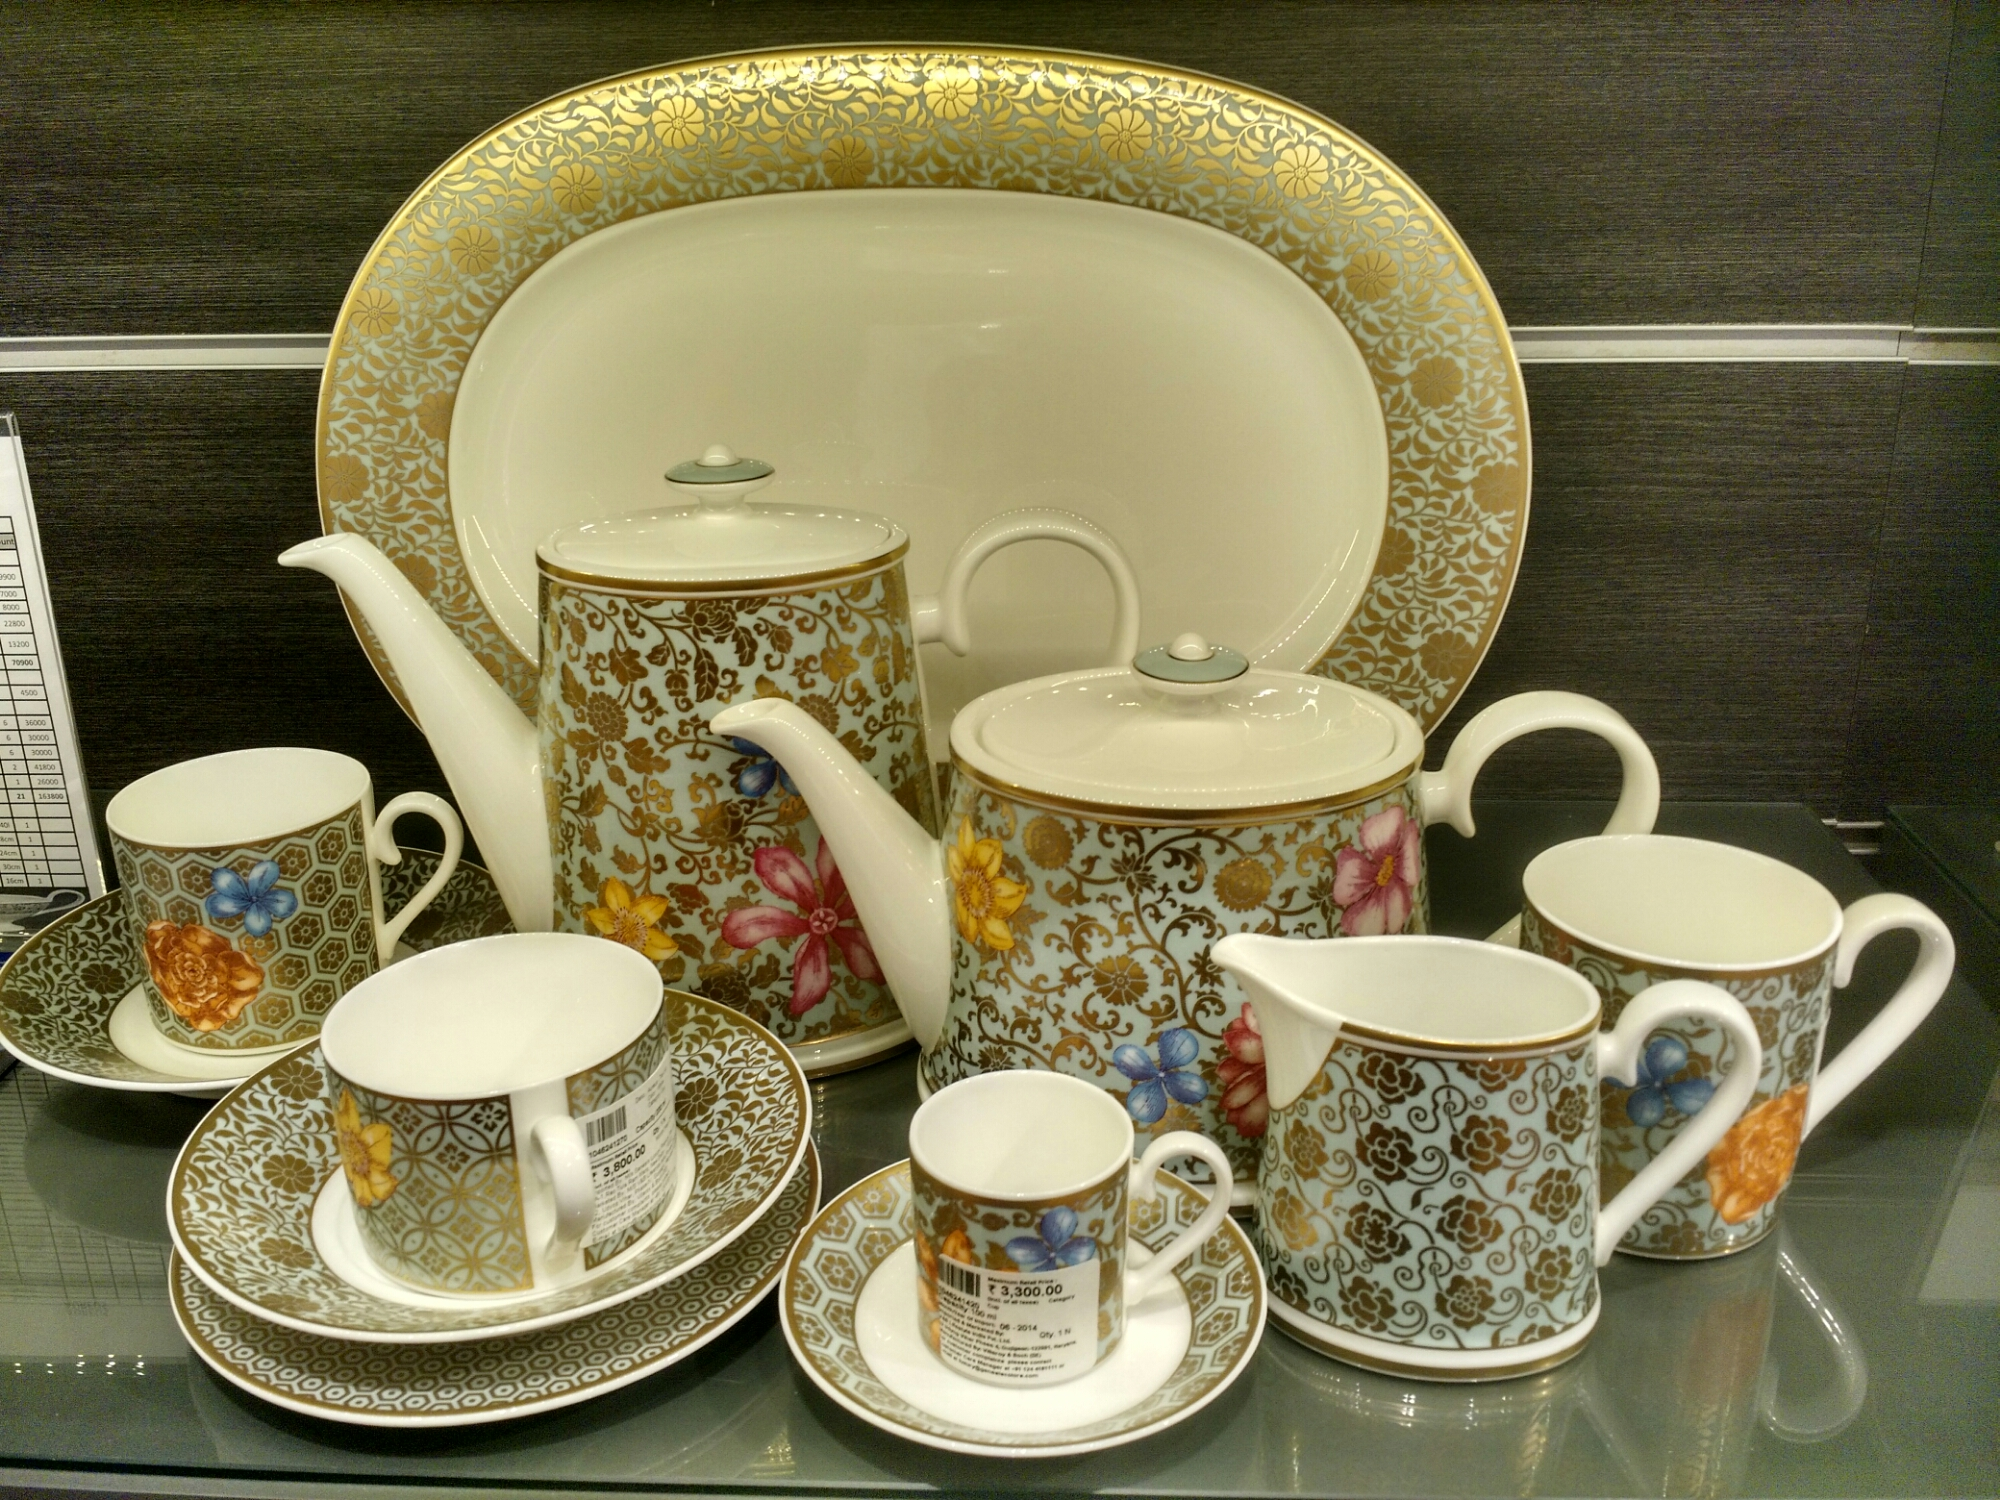 Villeroy And Boch Launch Of New Villeroy And Boch Tableware Store In Kolkata